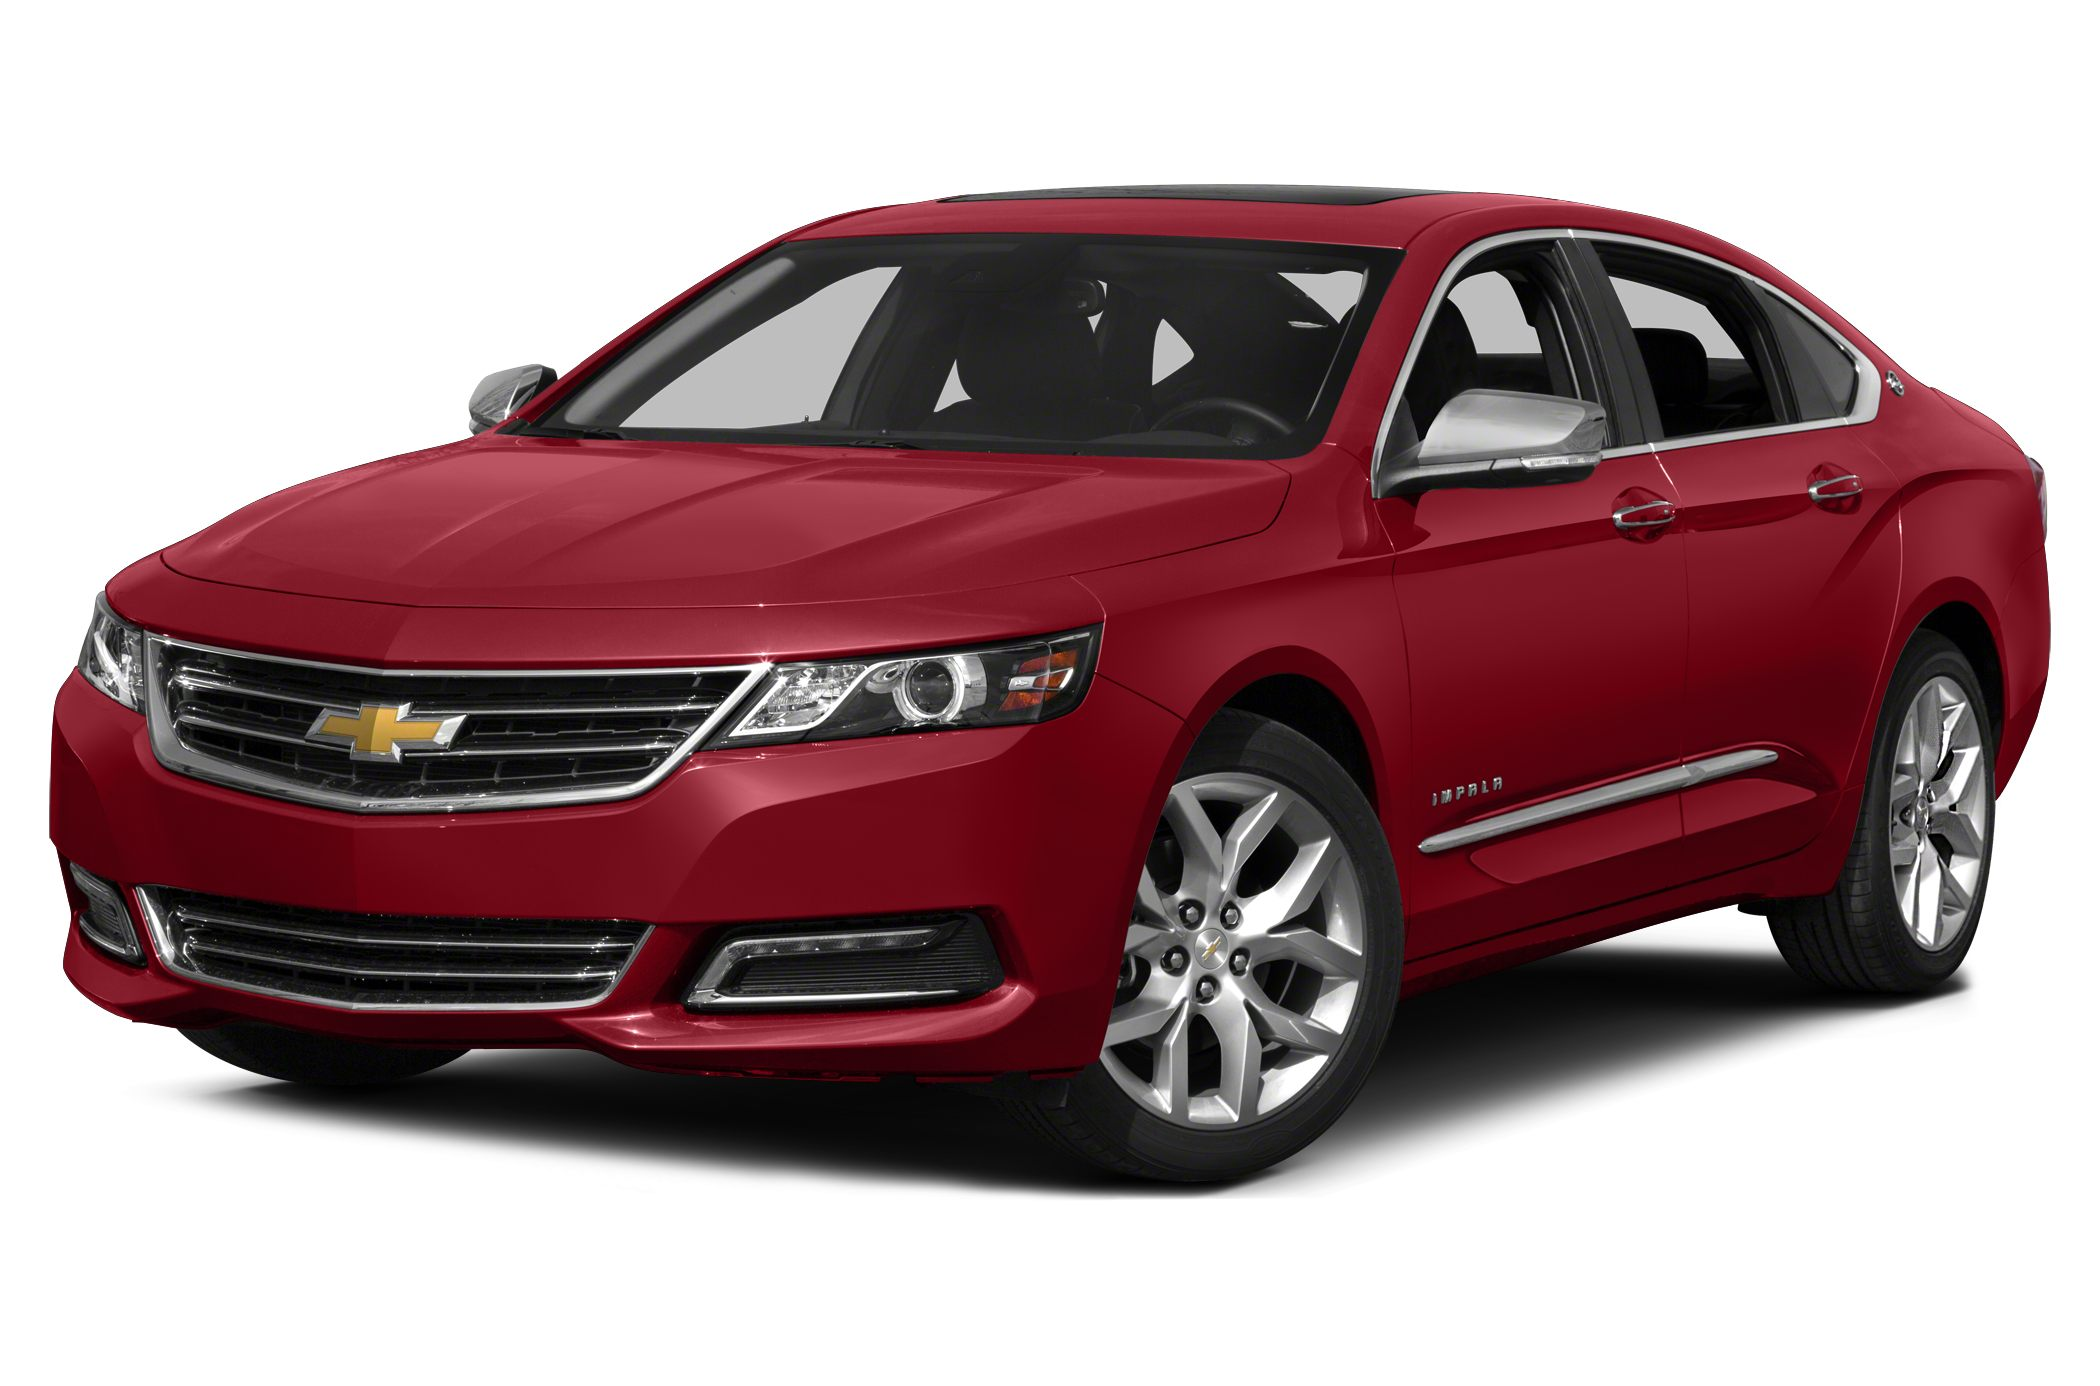 2015 Chevrolet Impala 2LT Sedan for sale in Pinehurst for $34,005 with 10 miles